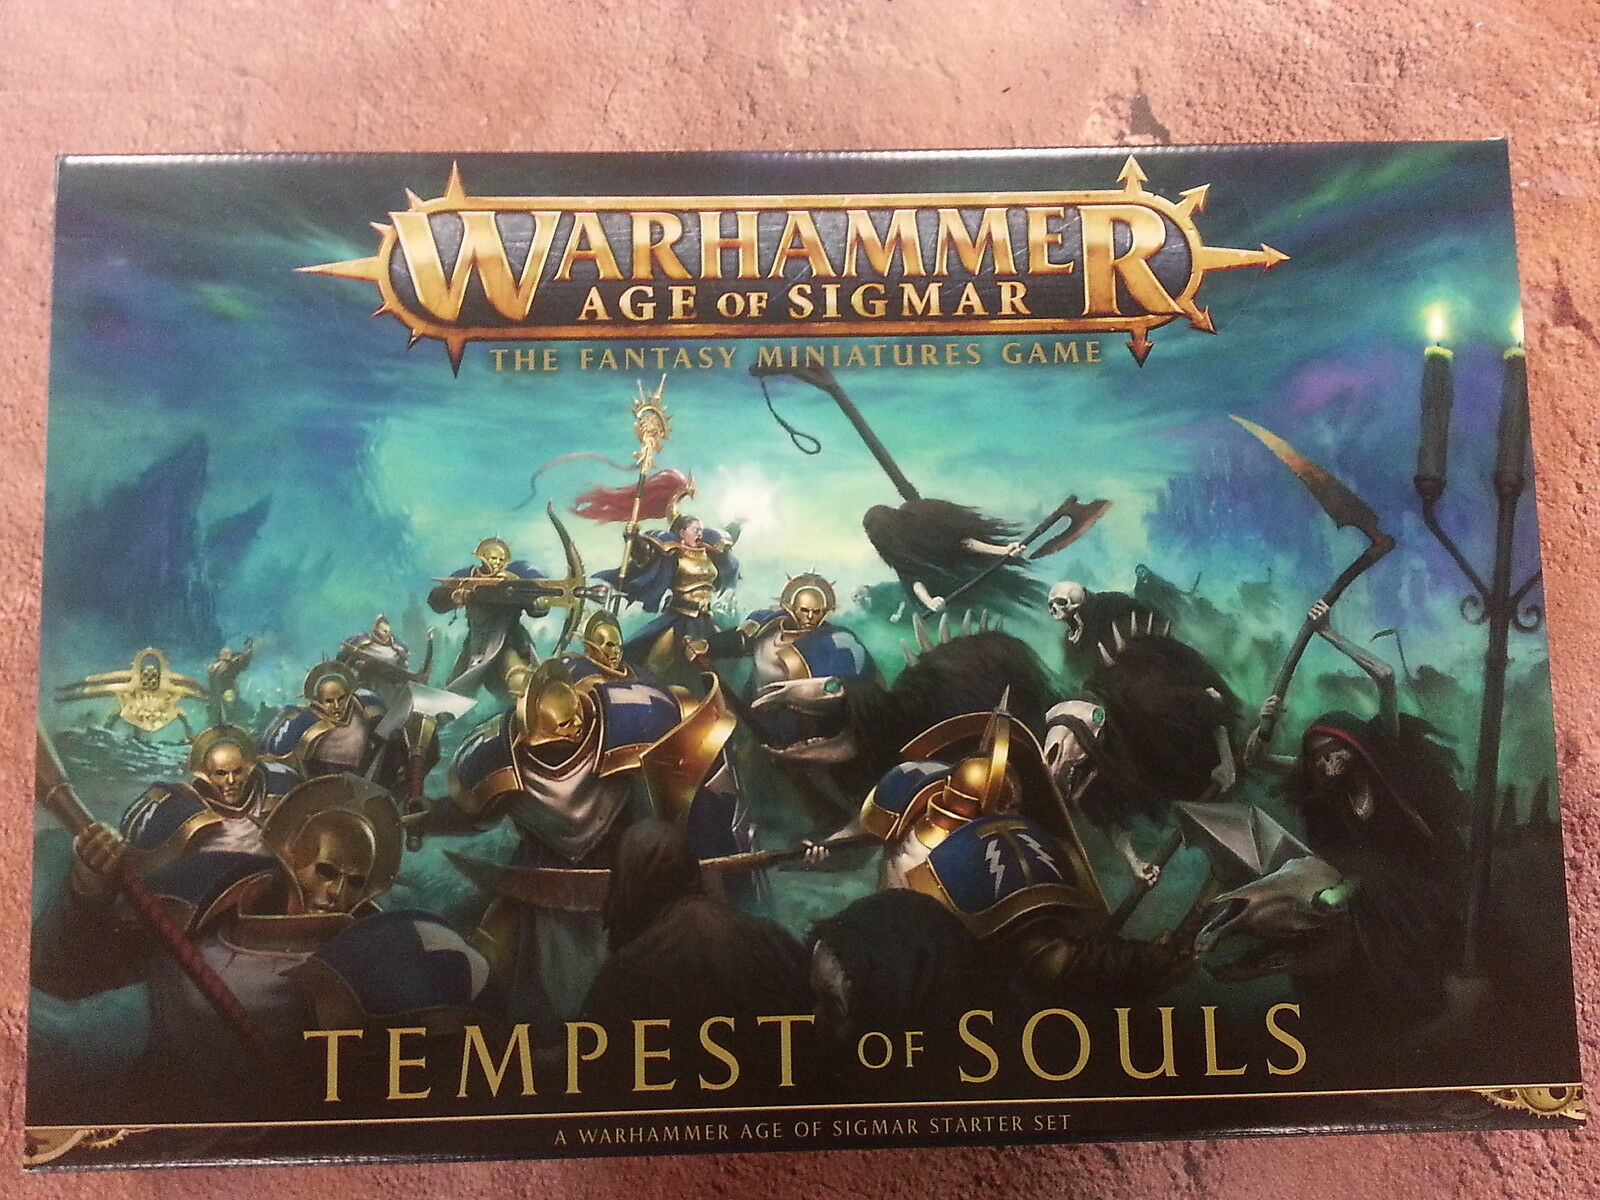 WARHAMMER AGE OF SIGMAR TEMPEST OF SOULS CORE STARTER SET - NEW